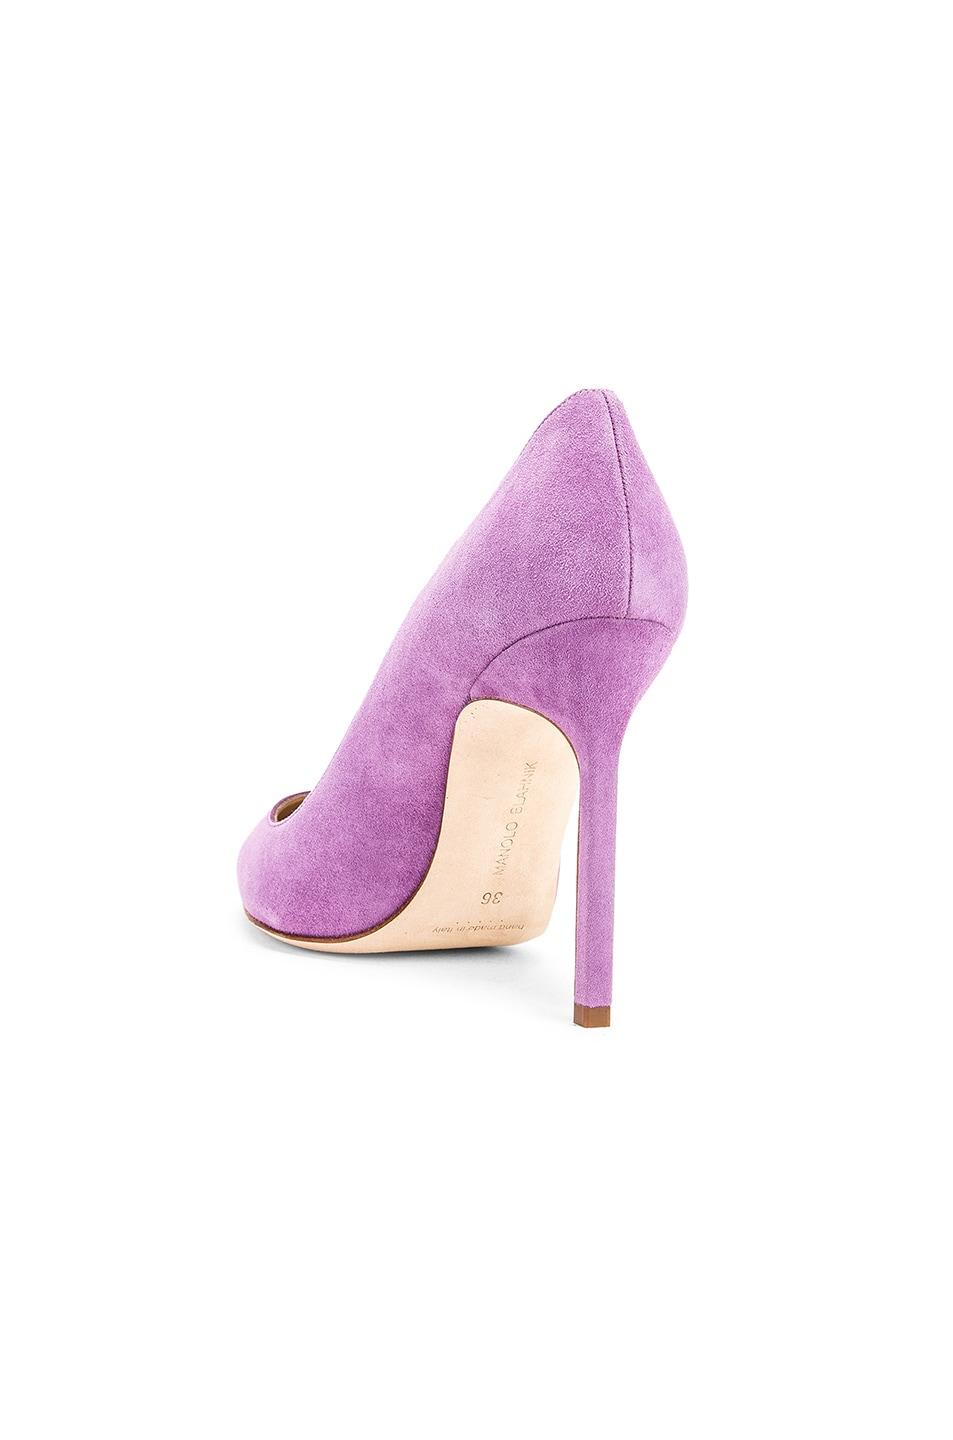 Image 3 of Manolo Blahnik BB 105 Pump in Lilac Purple Suede